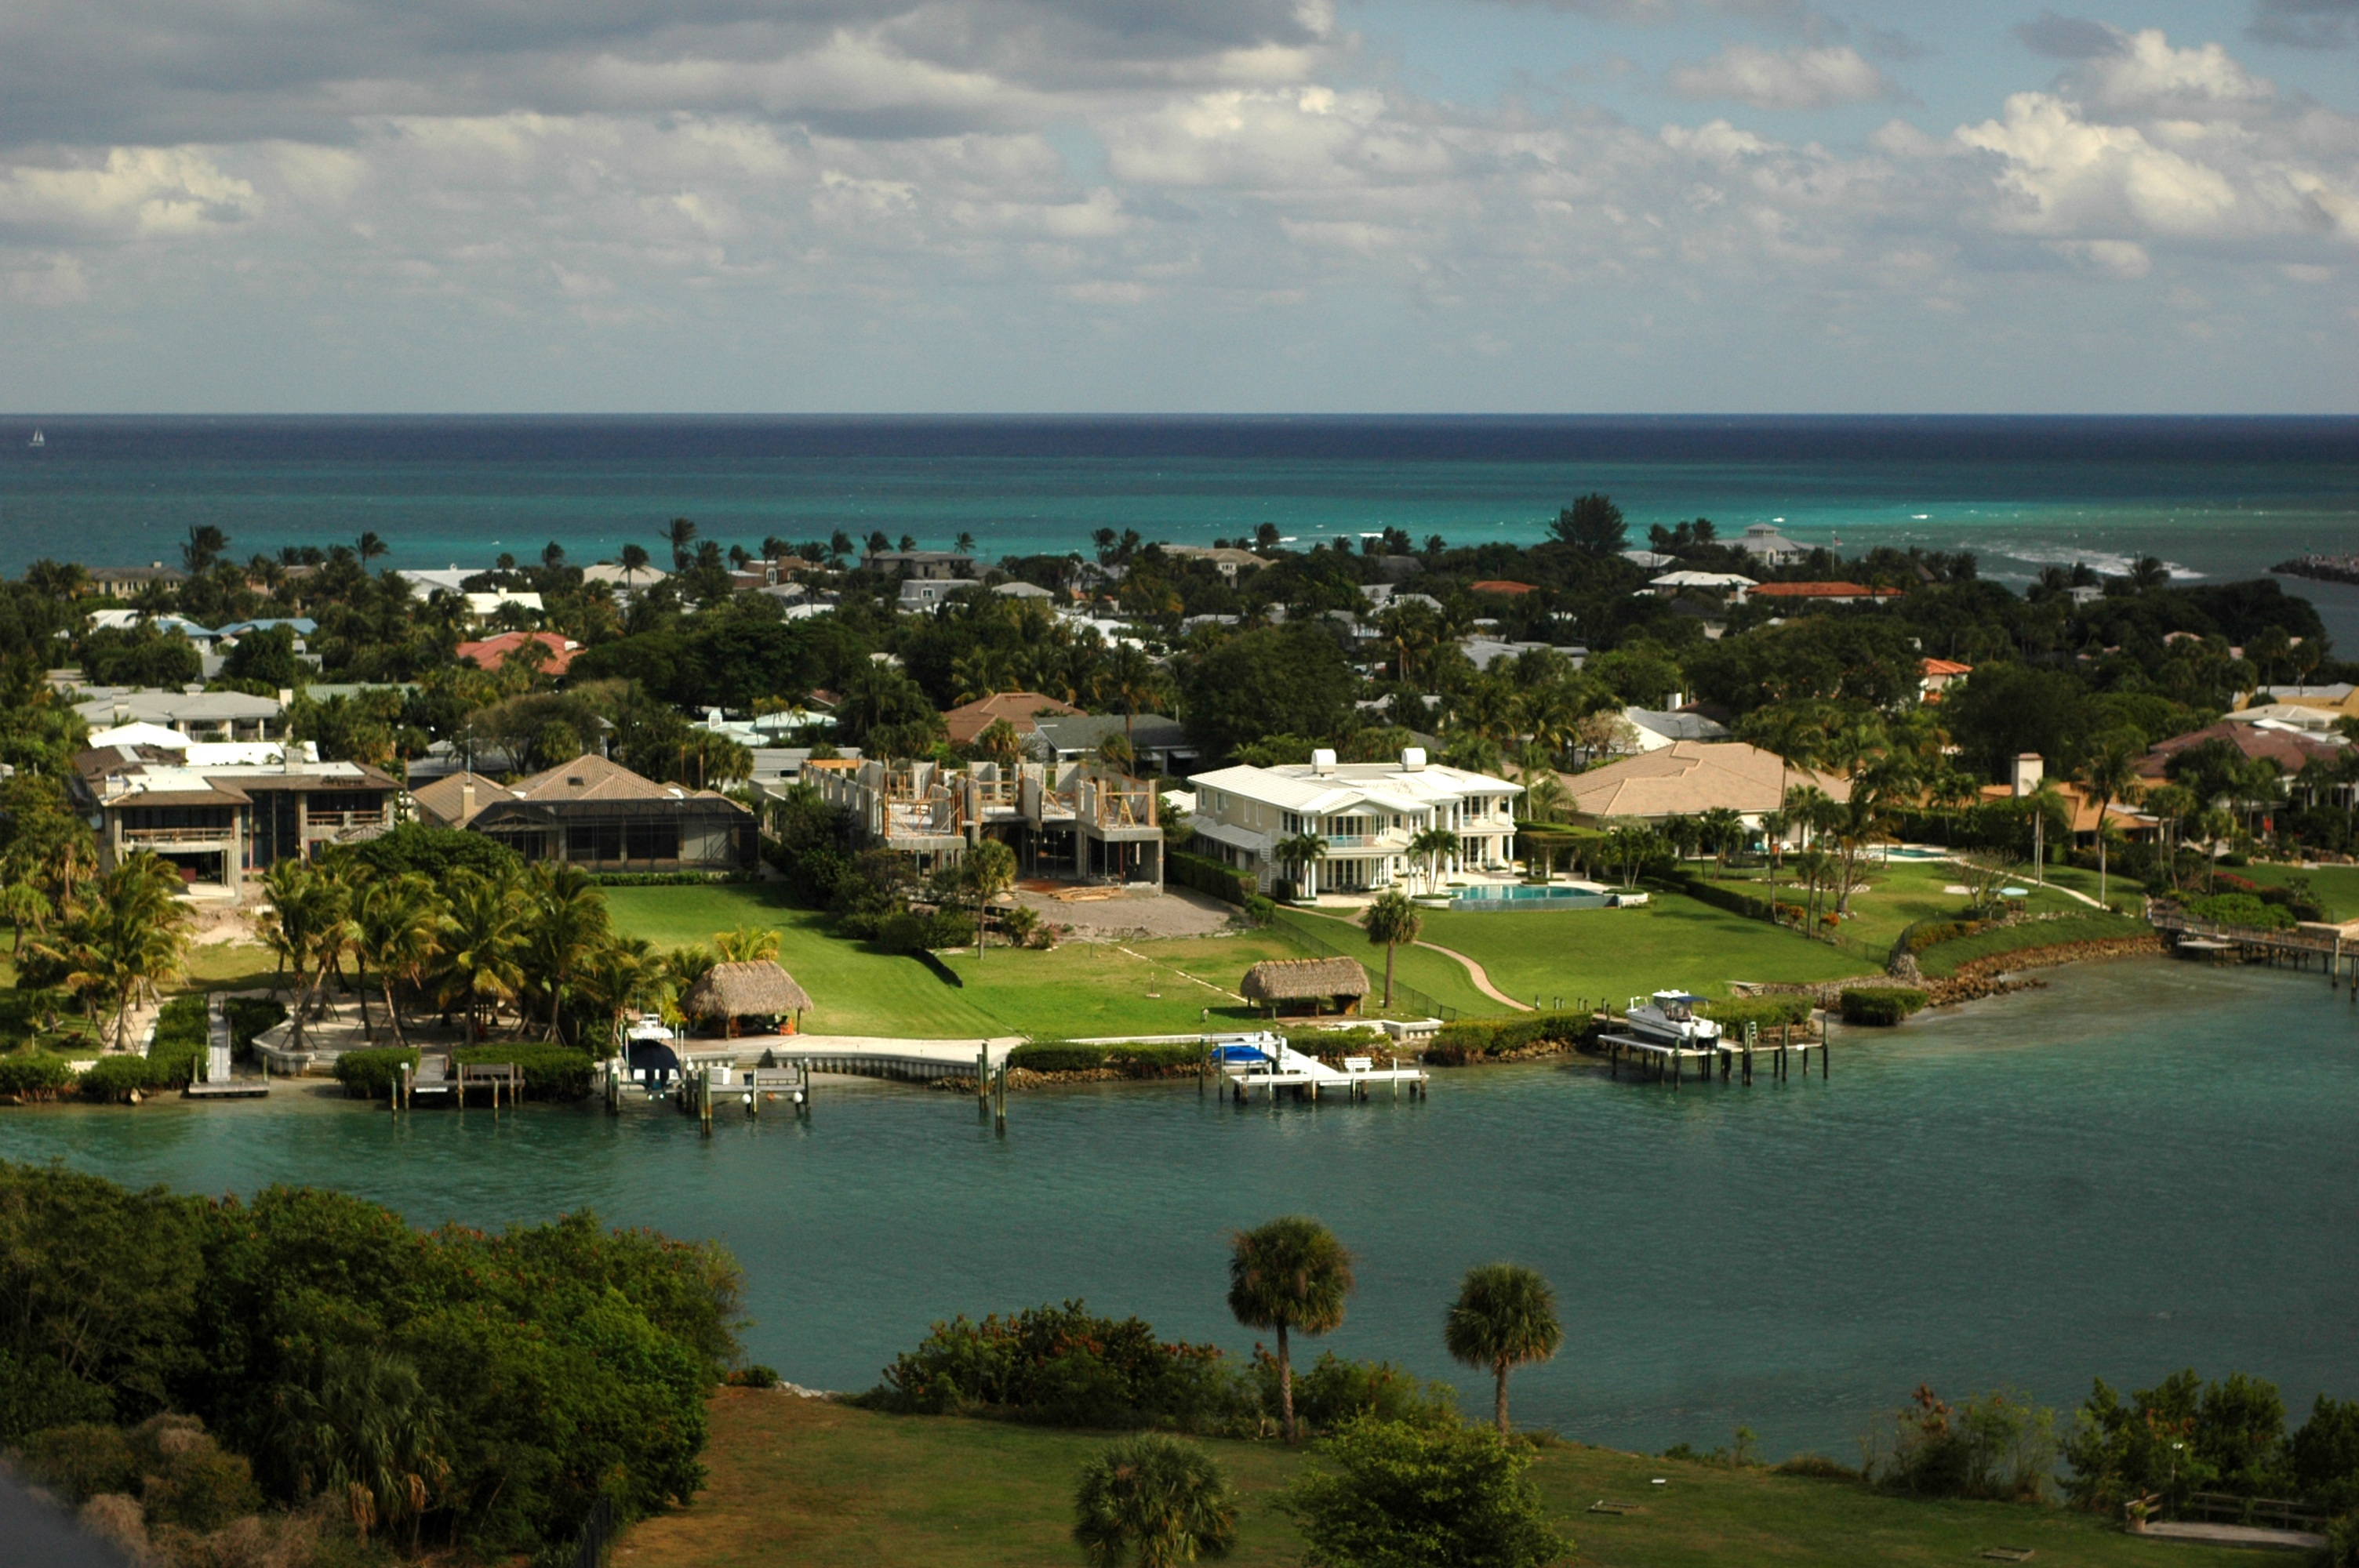 Top Marina Destinations on the Florida ICW for Heading North in the Ditch